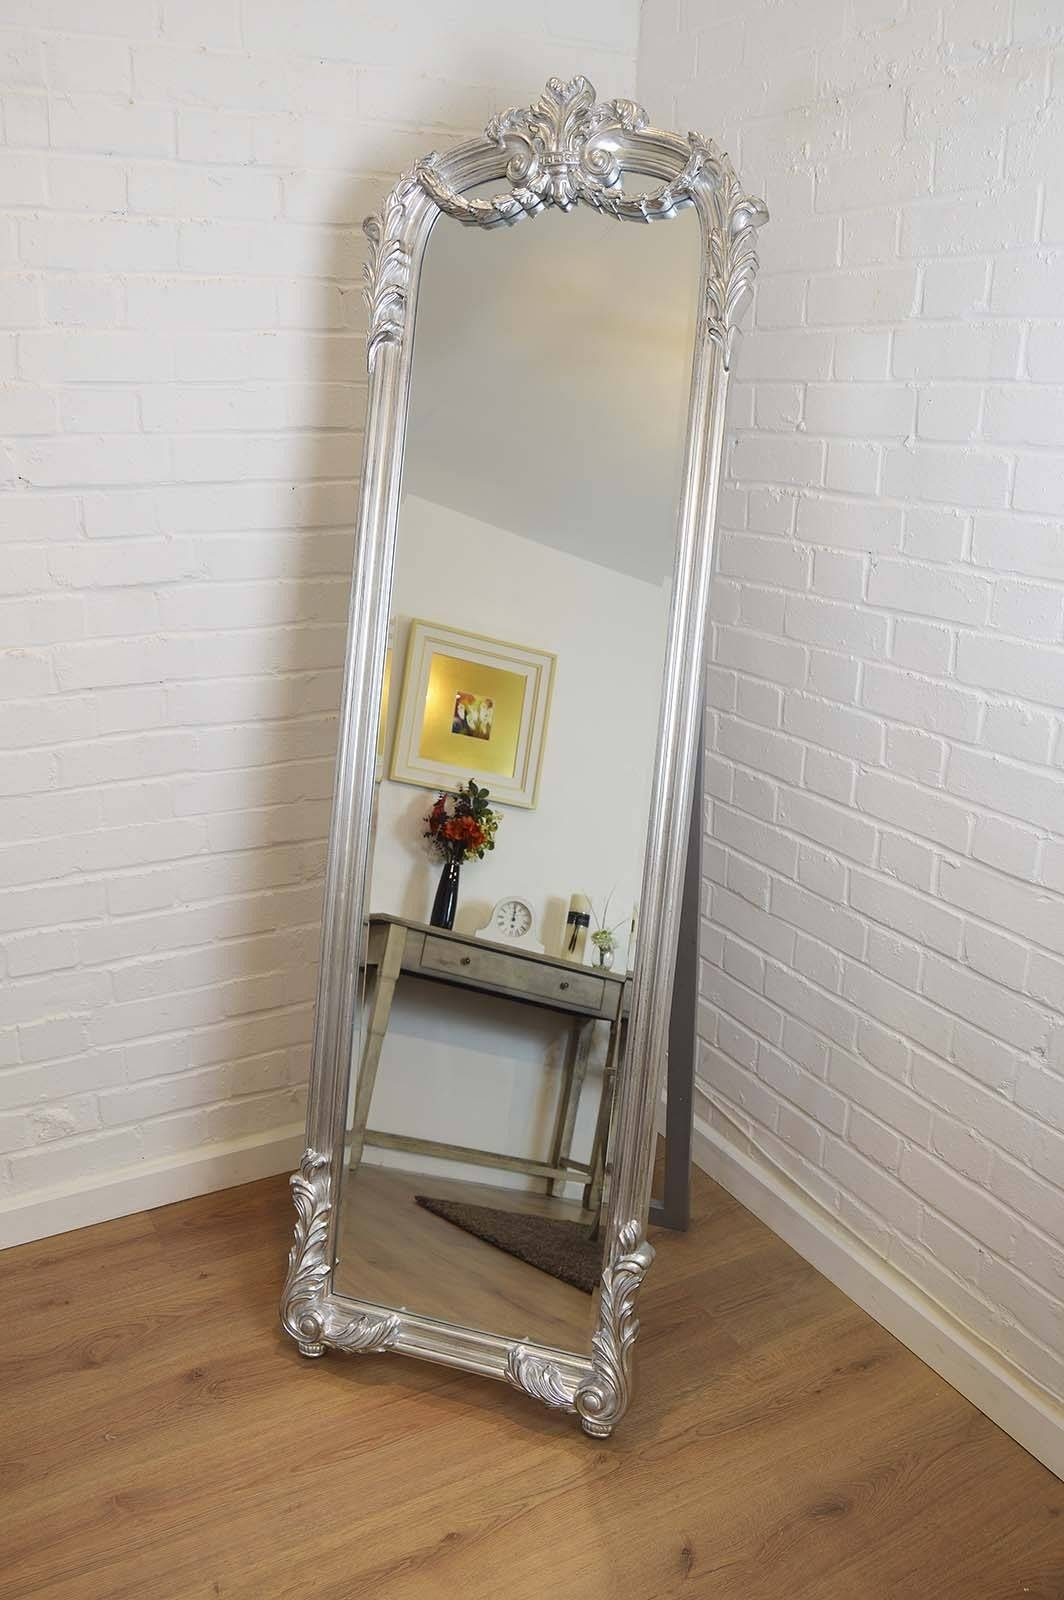 Large Free Standing Mirror 22 Awesome Exterior With Leaning Floor With Regard To Free Standing Mirrors With Drawer (View 21 of 25)